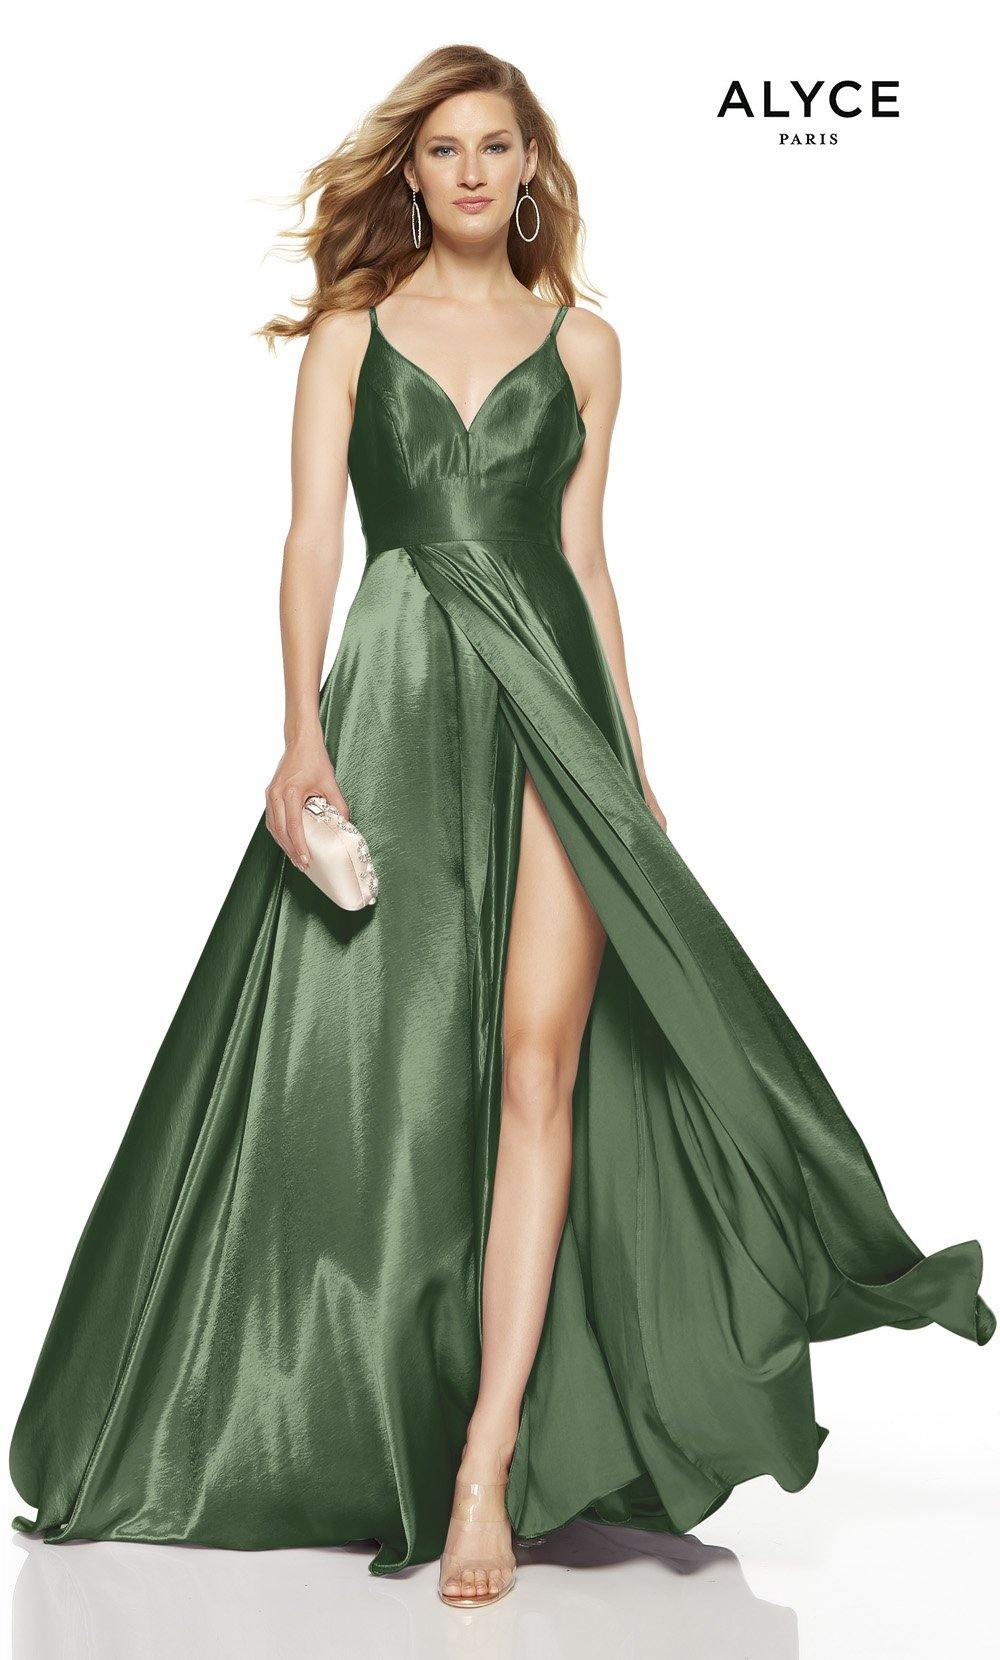 Sage Green formal dress with a V-neck and a high slit